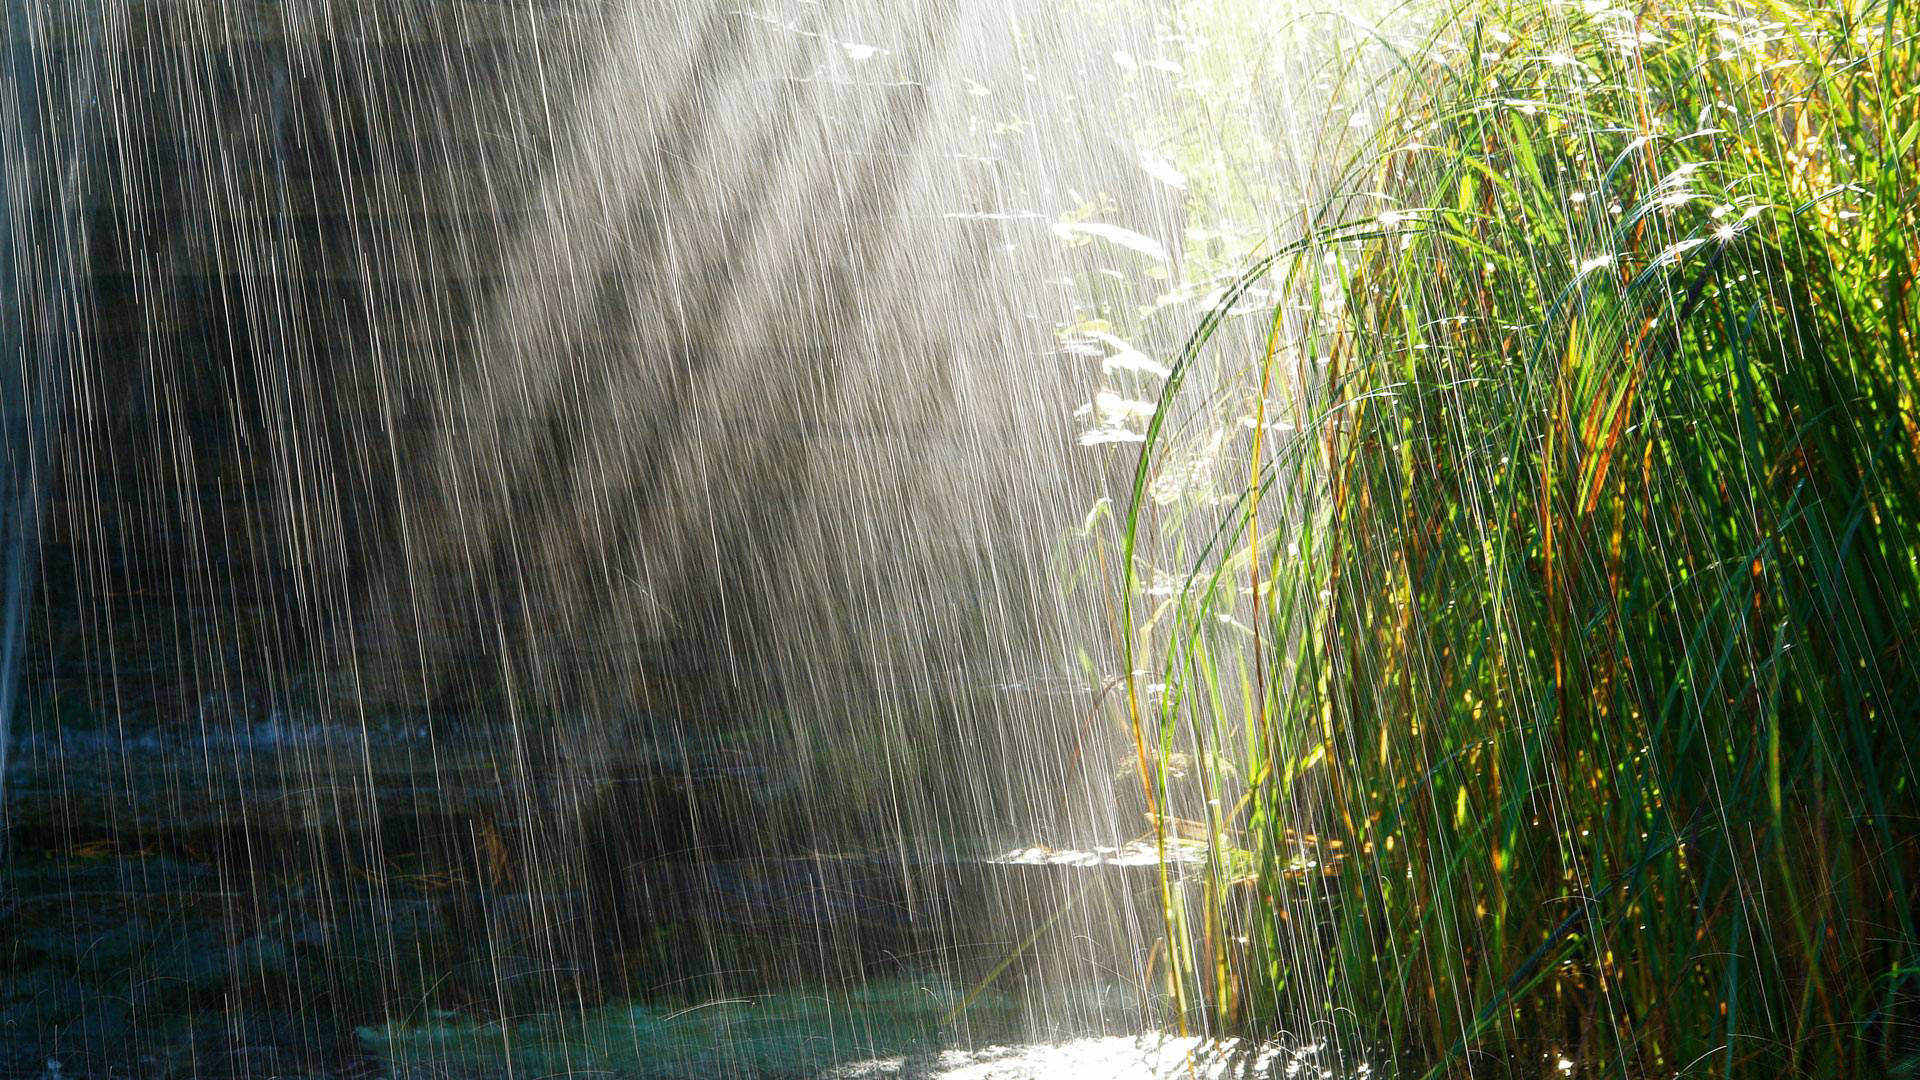 wallpapersxl-rainfall-nature-of-top-general-review-kreview-reviews-1404762-1920x1080